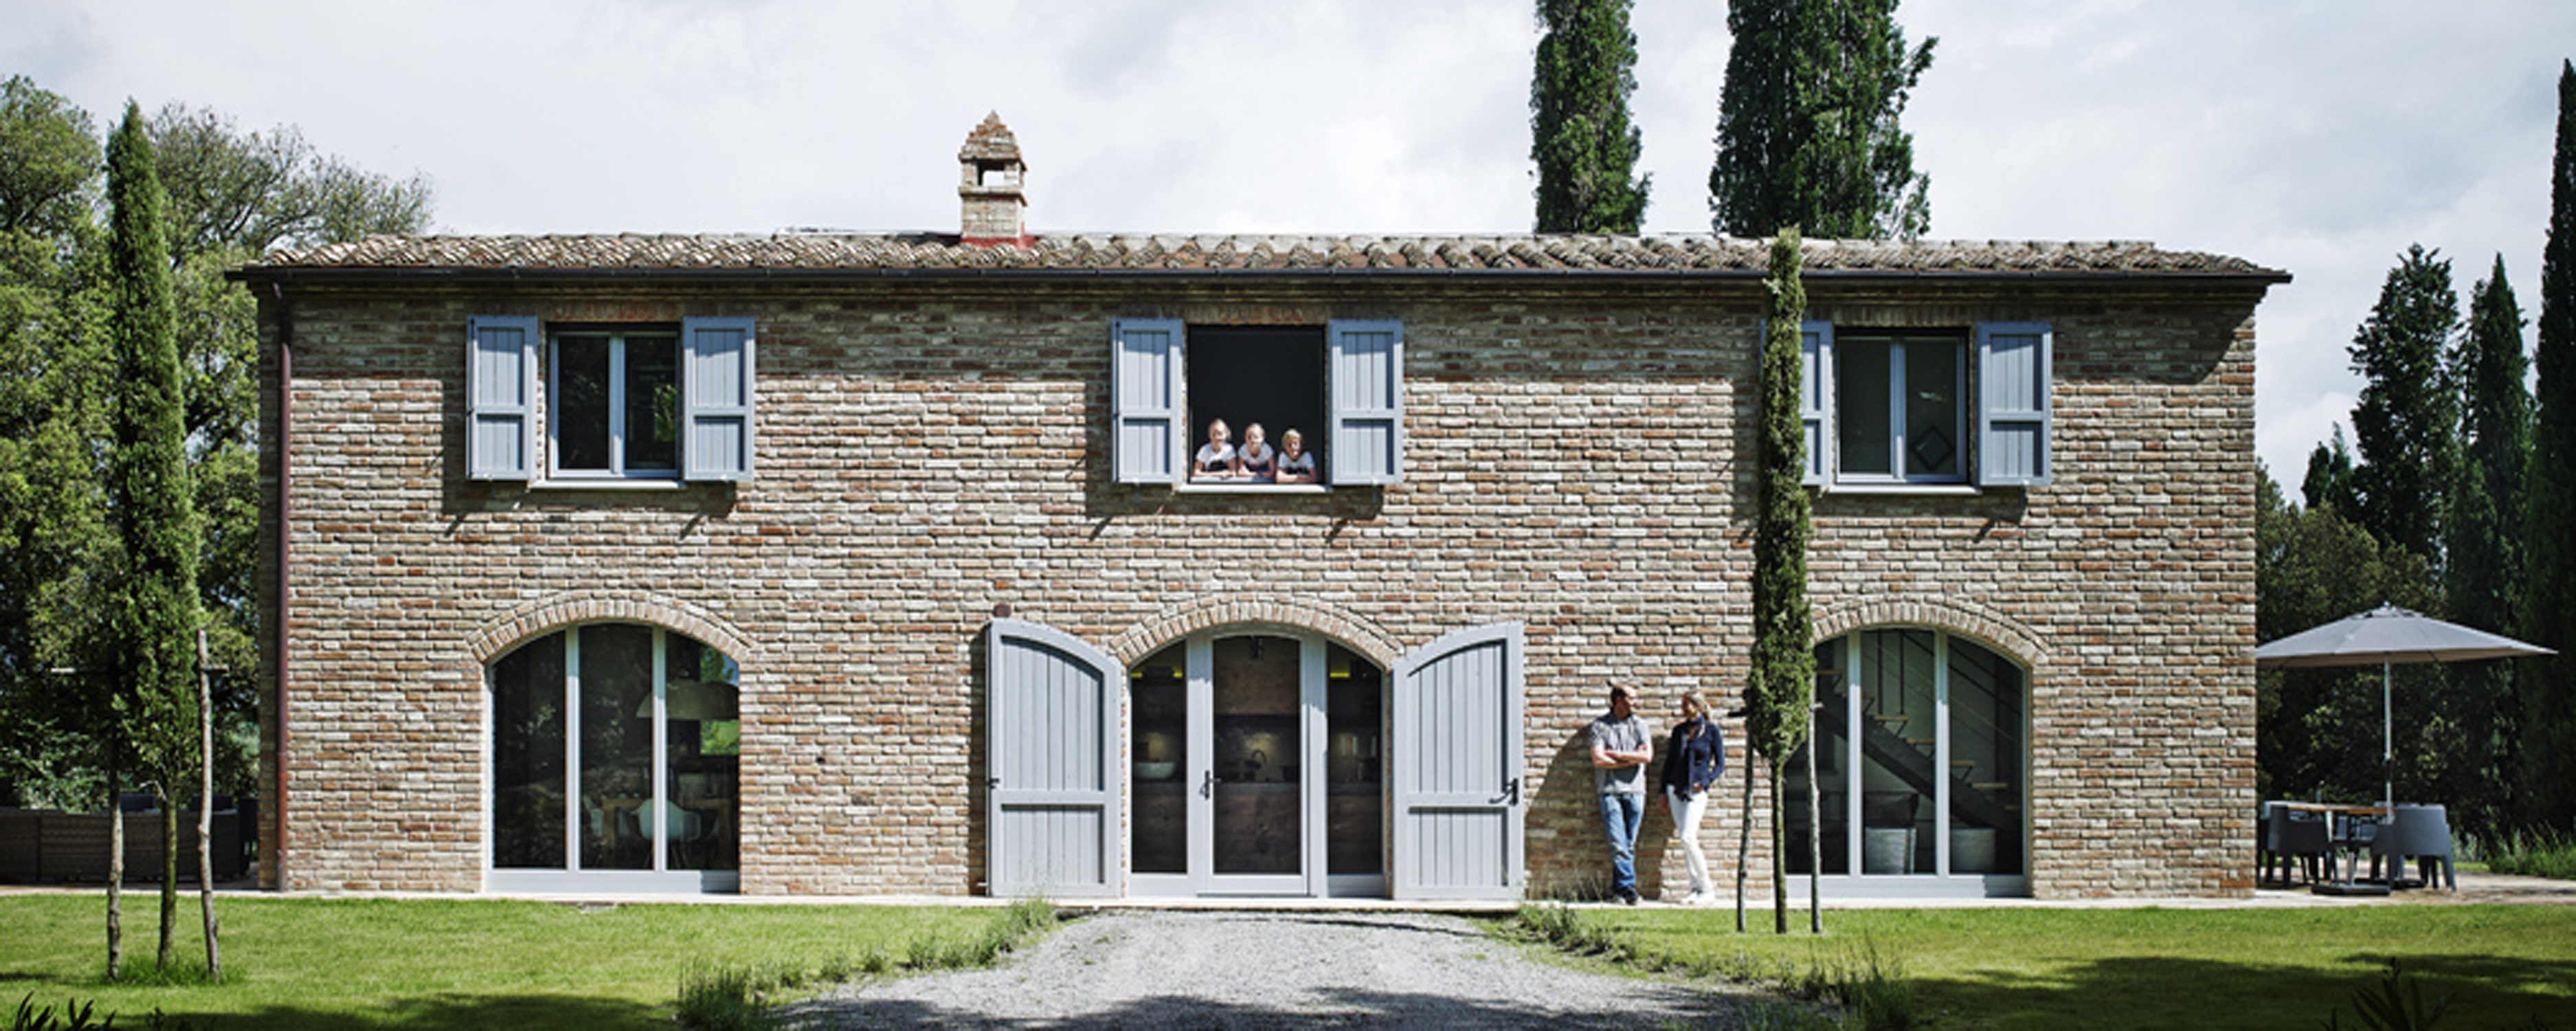 Villa Vergelle, a beautiful country house in the heart of Tuscany